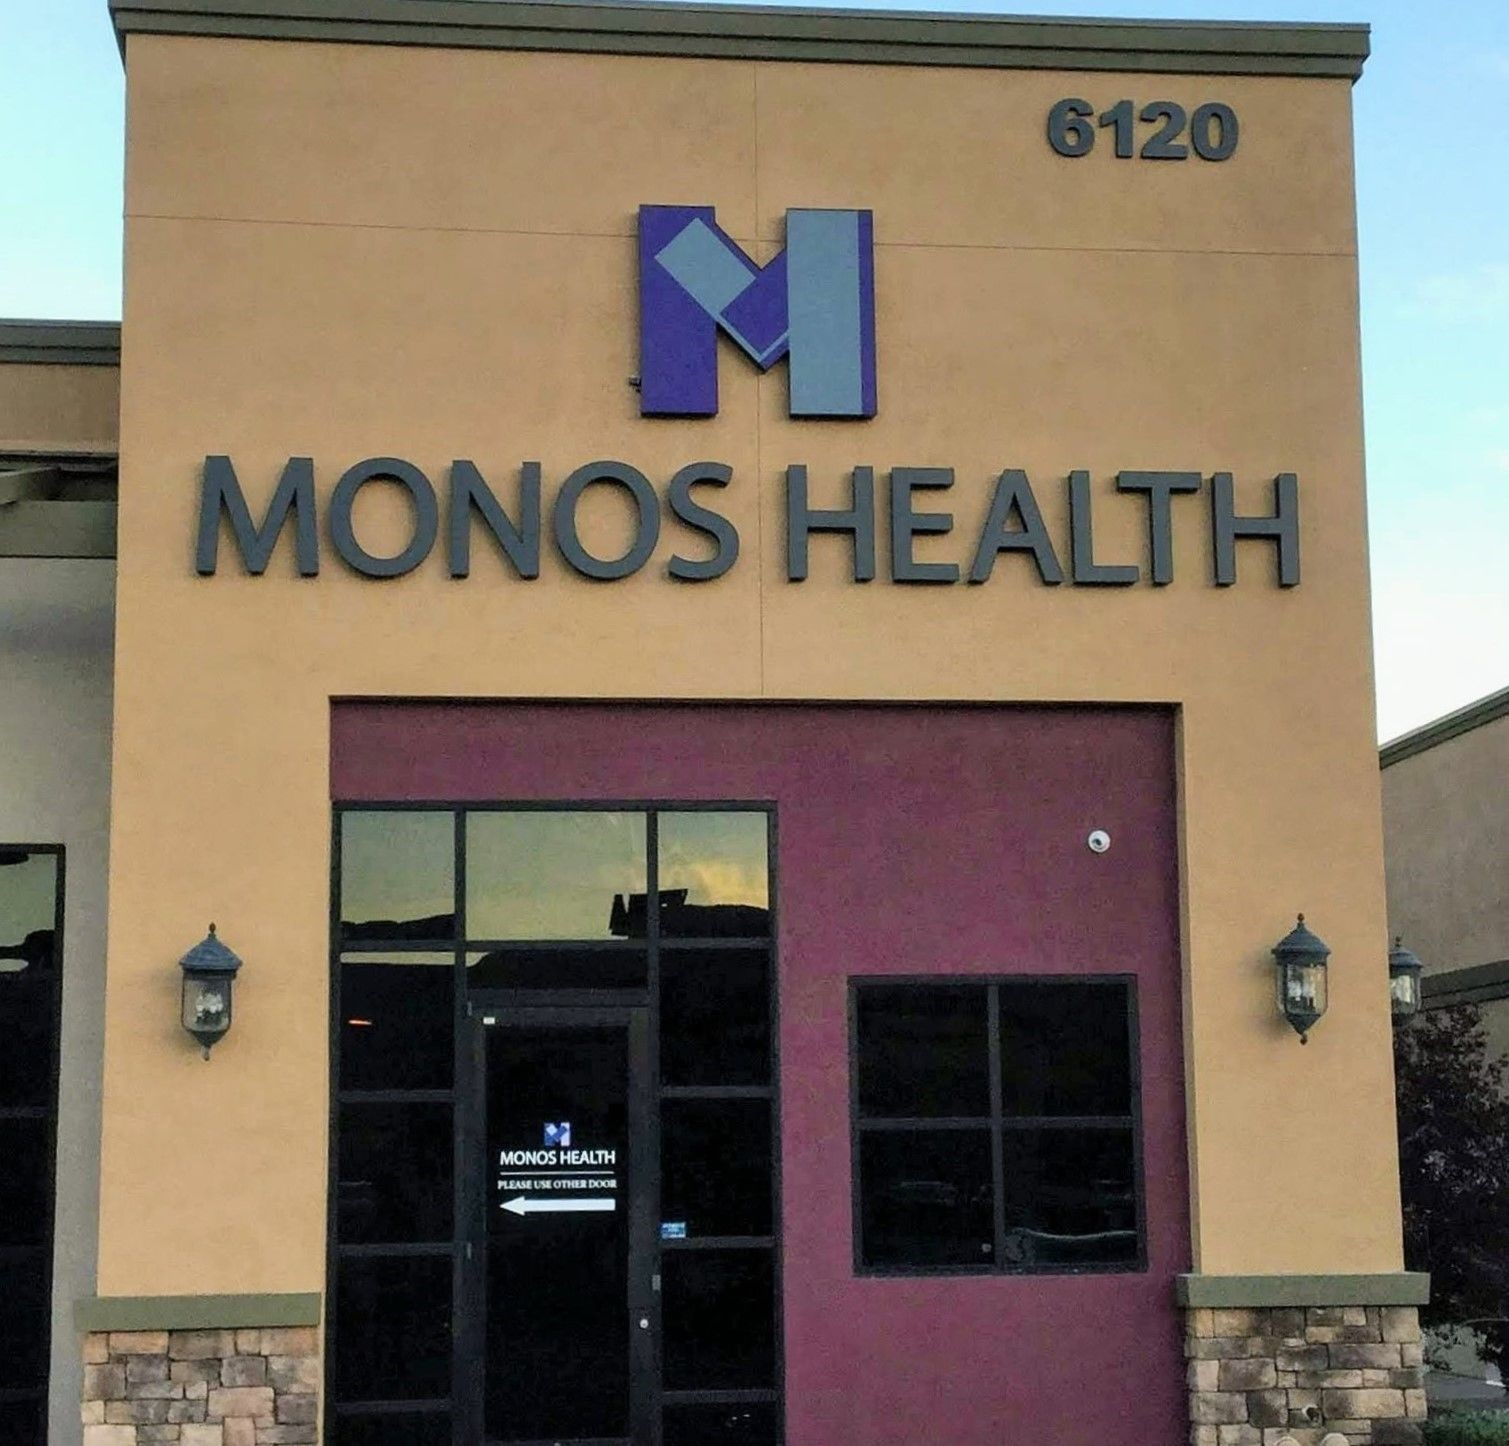 Channel Letters | Frontlit Channel Letters | Hospital & Healthcare Signs | Las Vegas